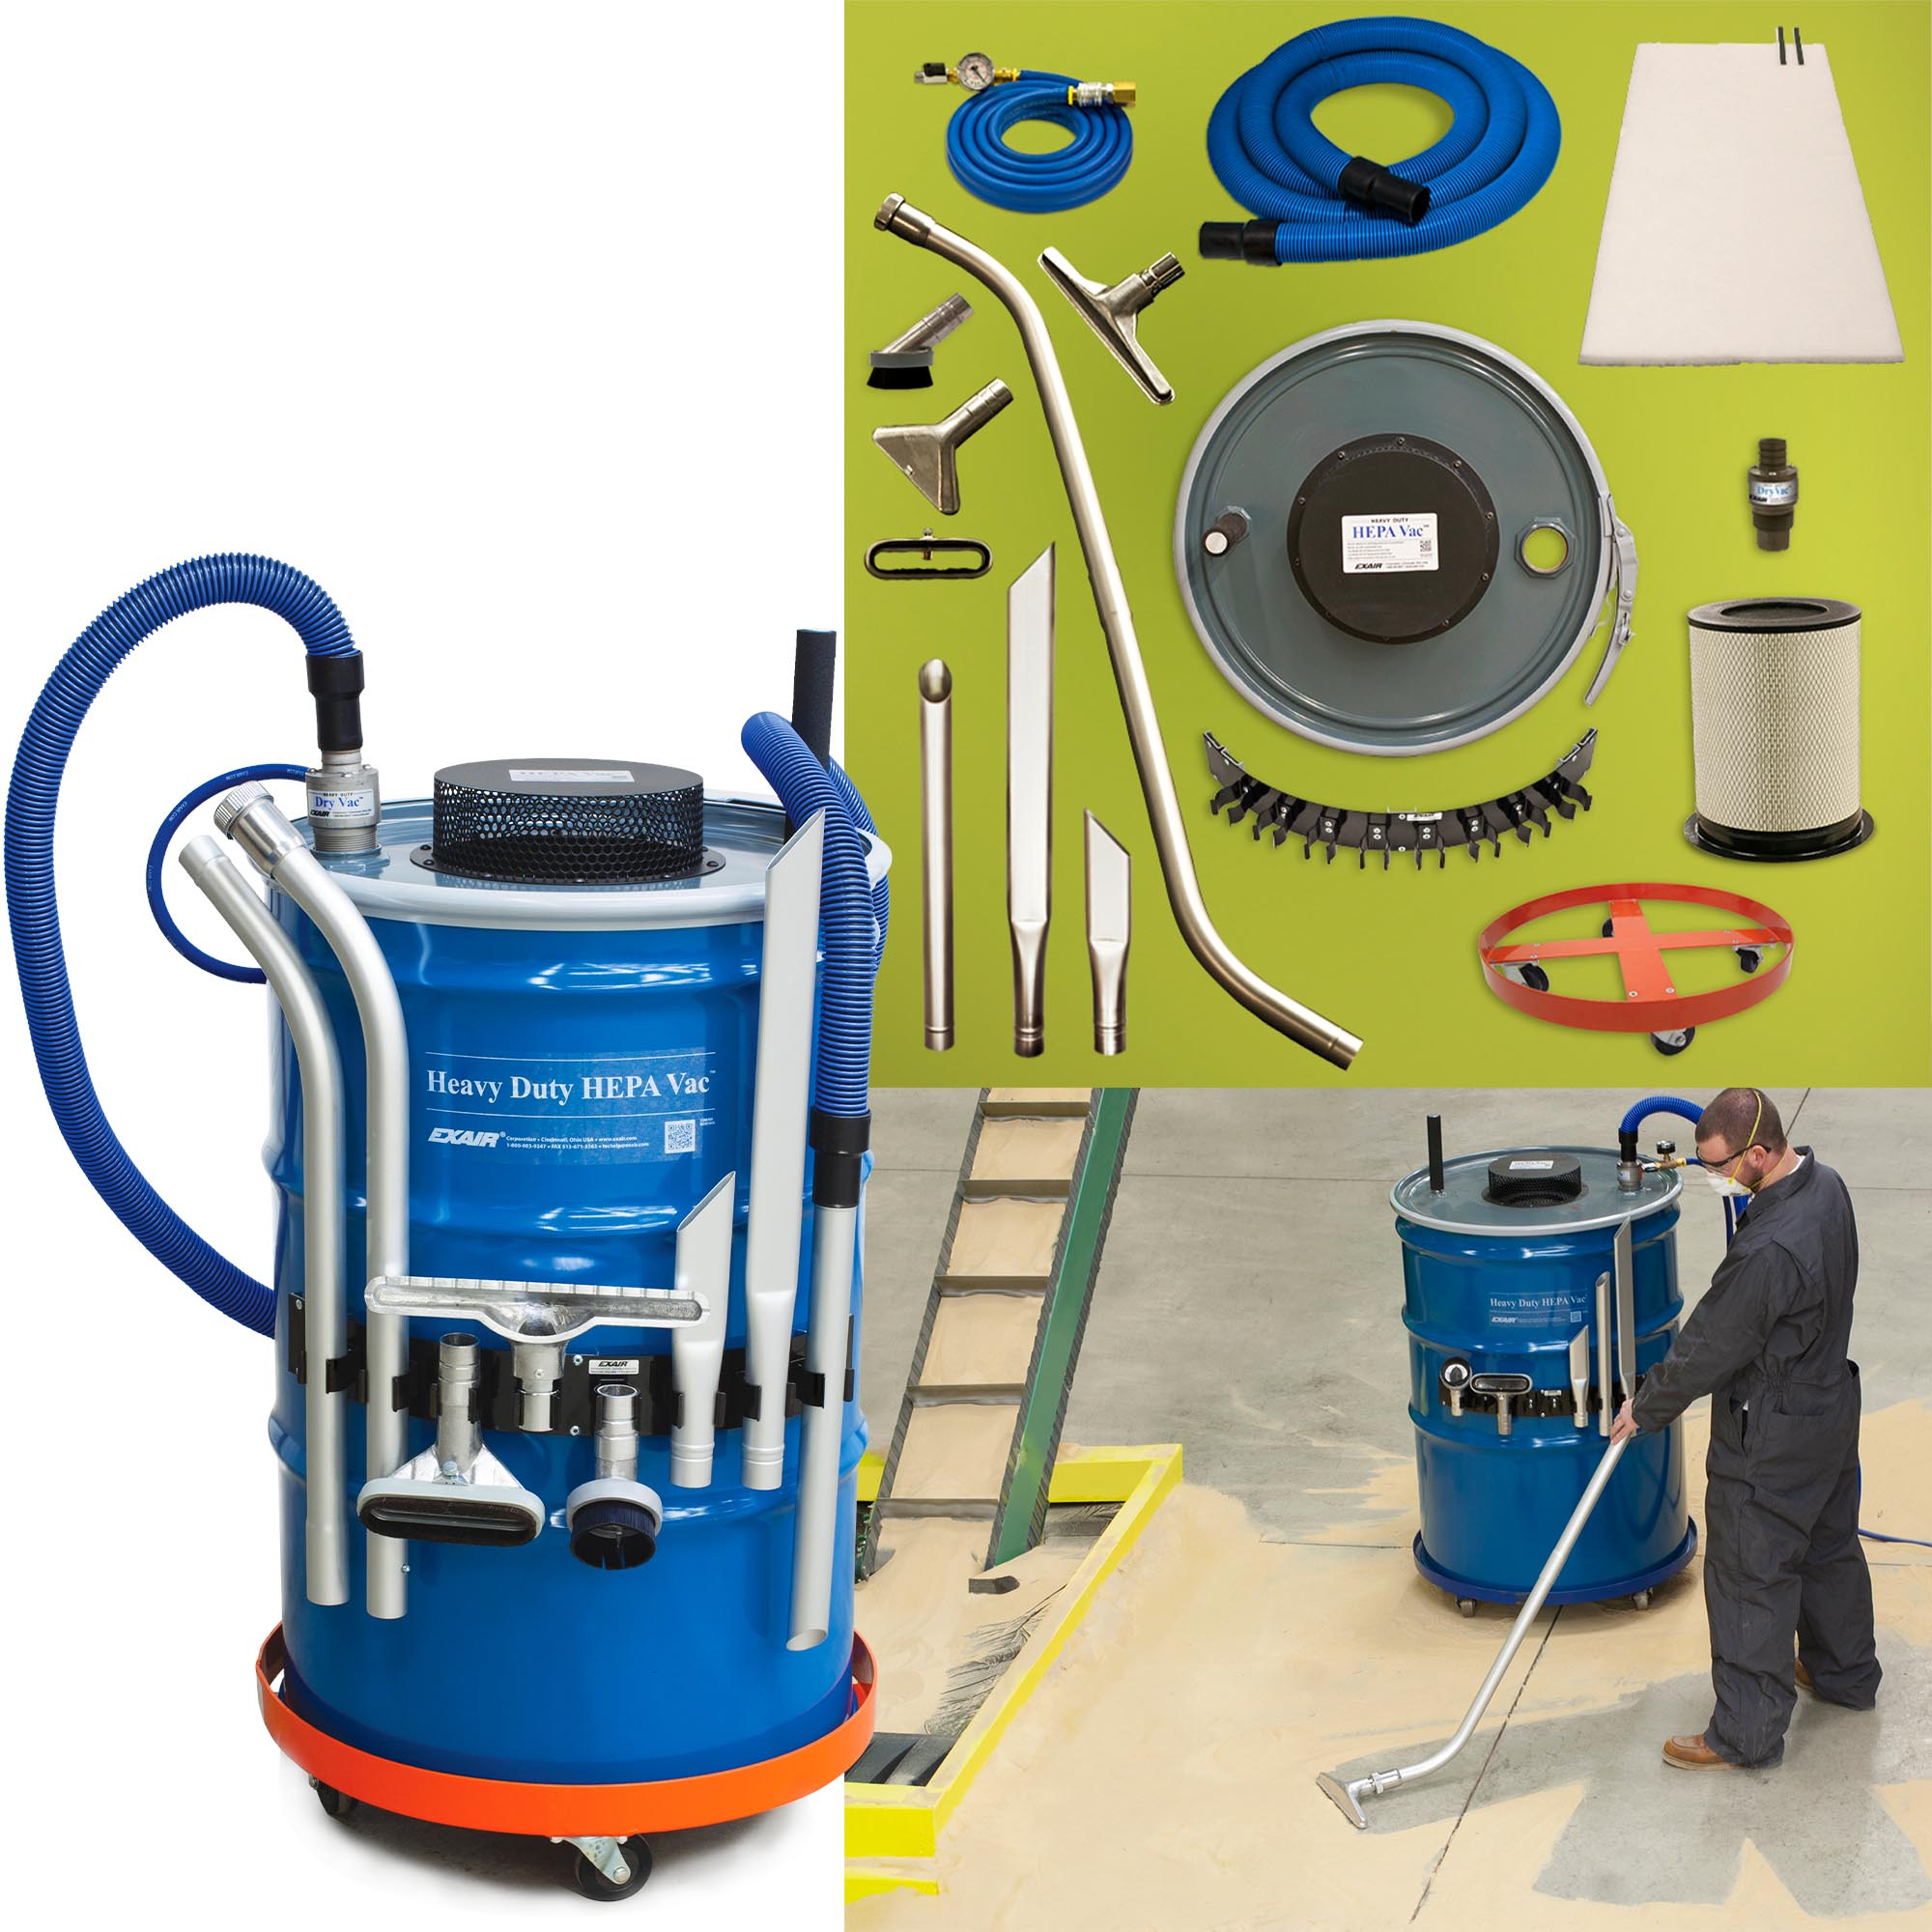 The Model 6399 Premium Heavy Duty HEPA Vac System includes the drum, drum dolly, HEPA filter, pre-filter, 10' (3m) static resistant hose, 20' (6.1m) compressed air hose, heavy duty tools, tool holder, shutoff valve and gauge.